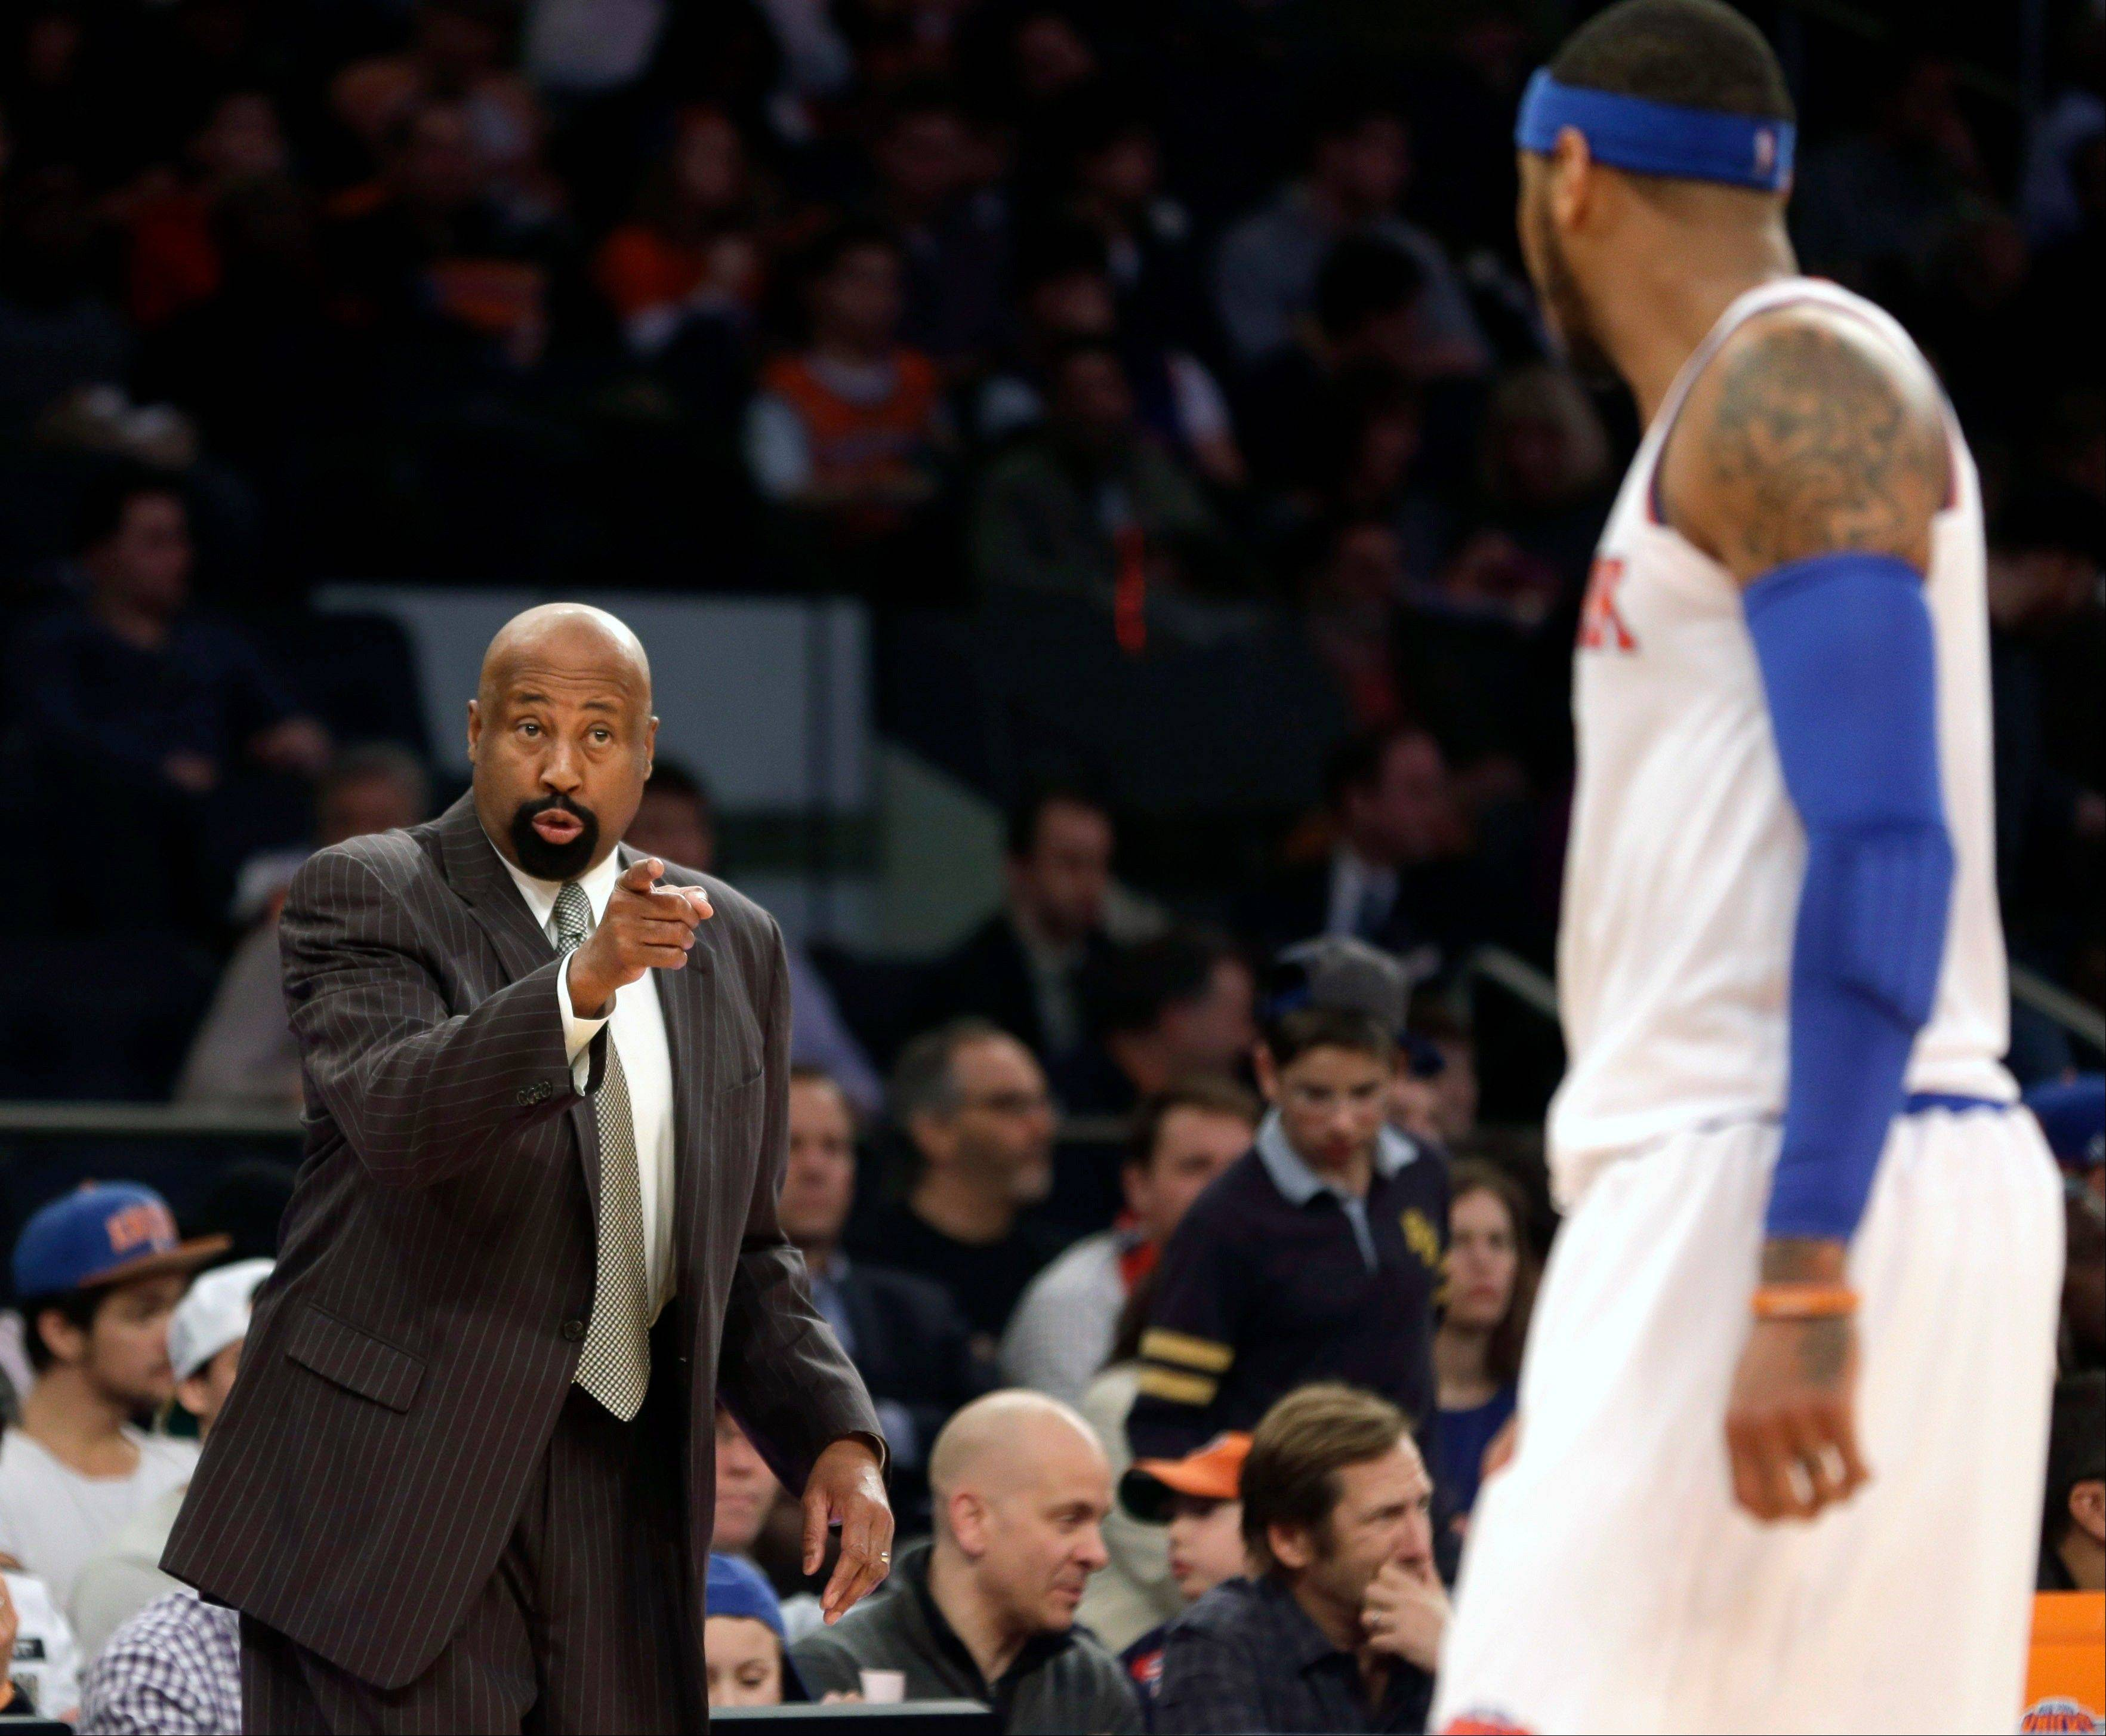 New York Knicks' head coach Mike Woodson, left, talks with Carmelo Anthony during the second half of an NBA basketball game at Madison Square Garden, Sunday, Jan. 26, 2014, in New York. The Knicks defeated the Lakers 110-103.